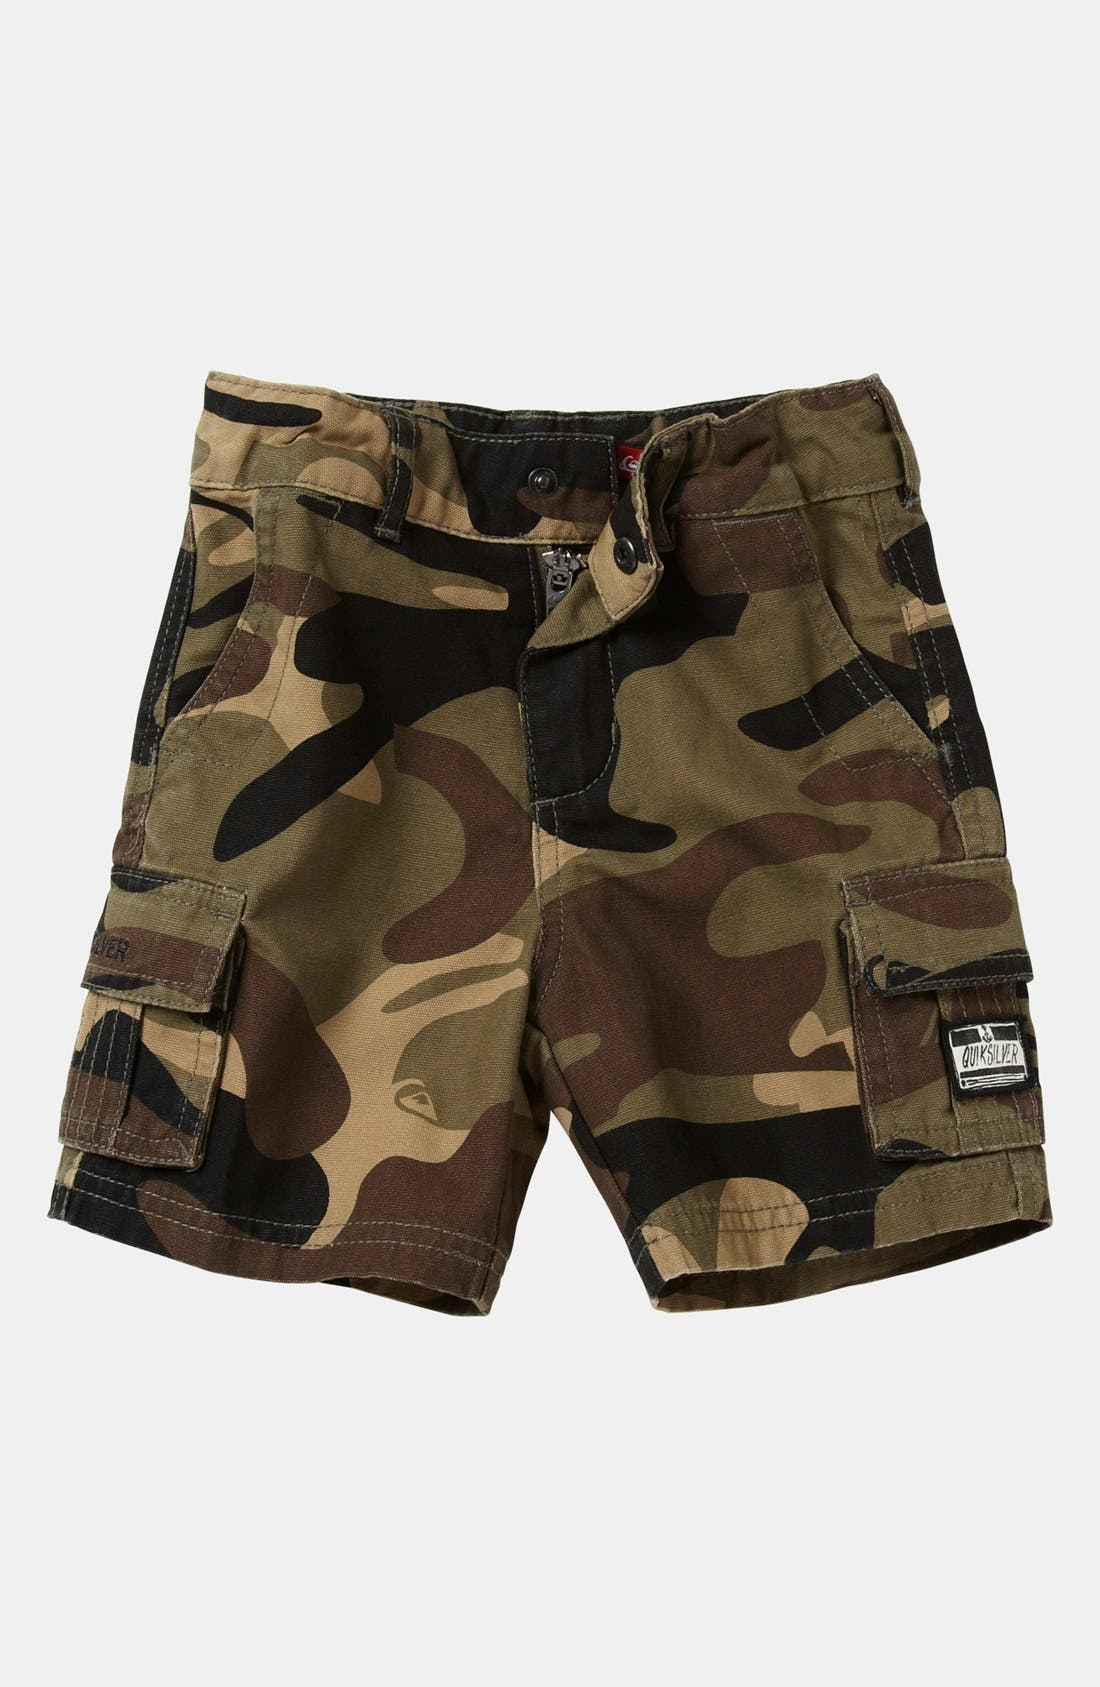 Alternate Image 1 Selected - Quiksilver Camo Shorts (Baby)